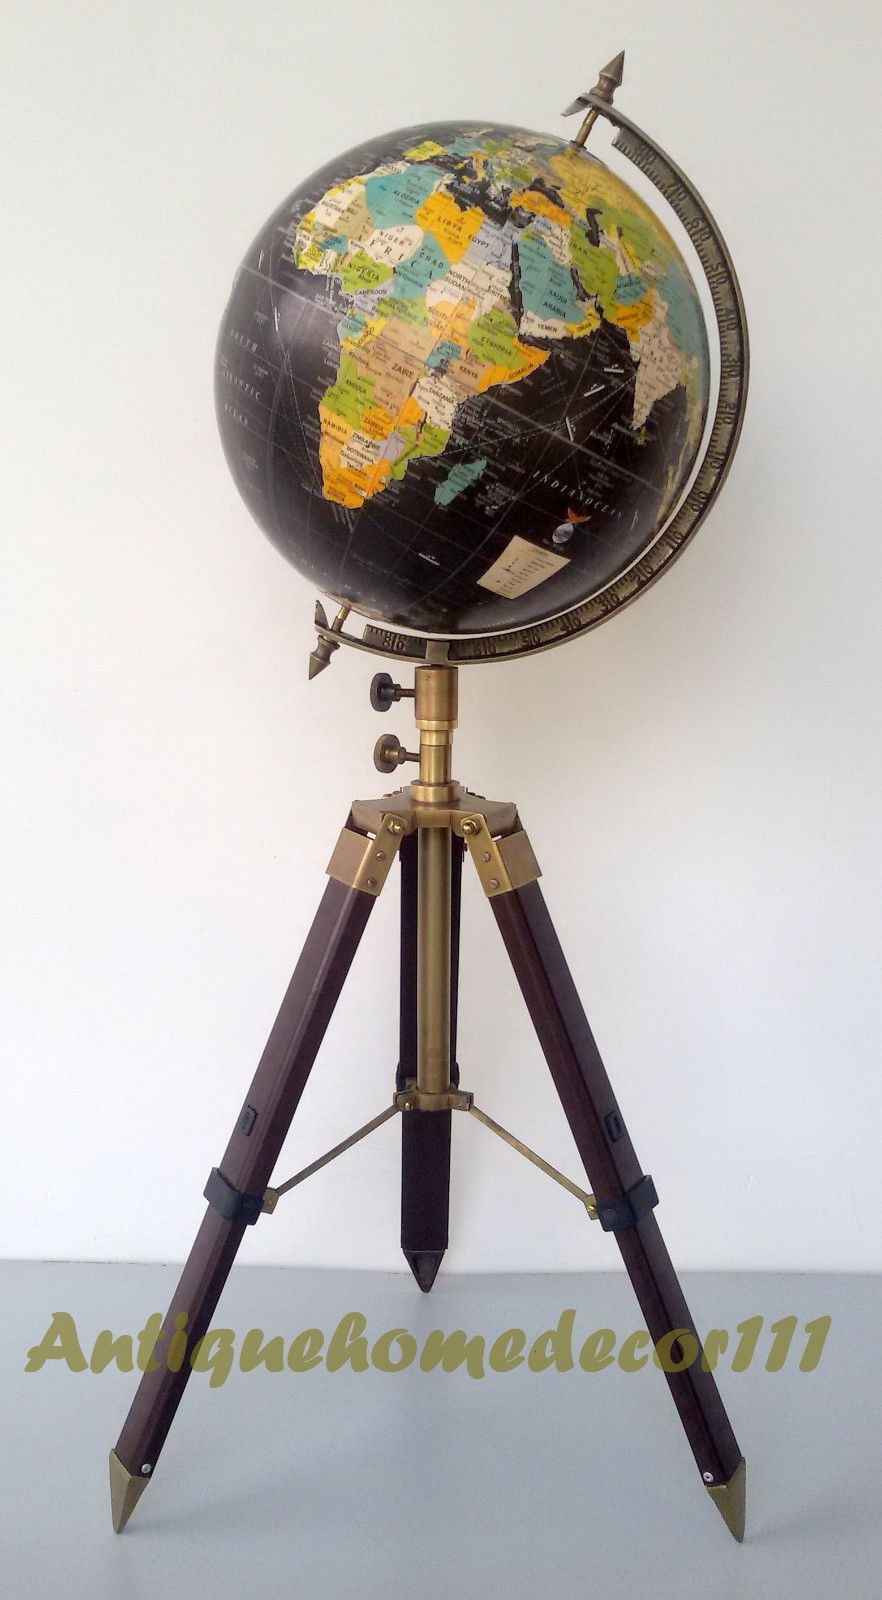 Vintage crams imperial world map globe 12 round w antique finish vintage crams imperial world map globe 12 round w antique finish tripod stand gumiabroncs Image collections